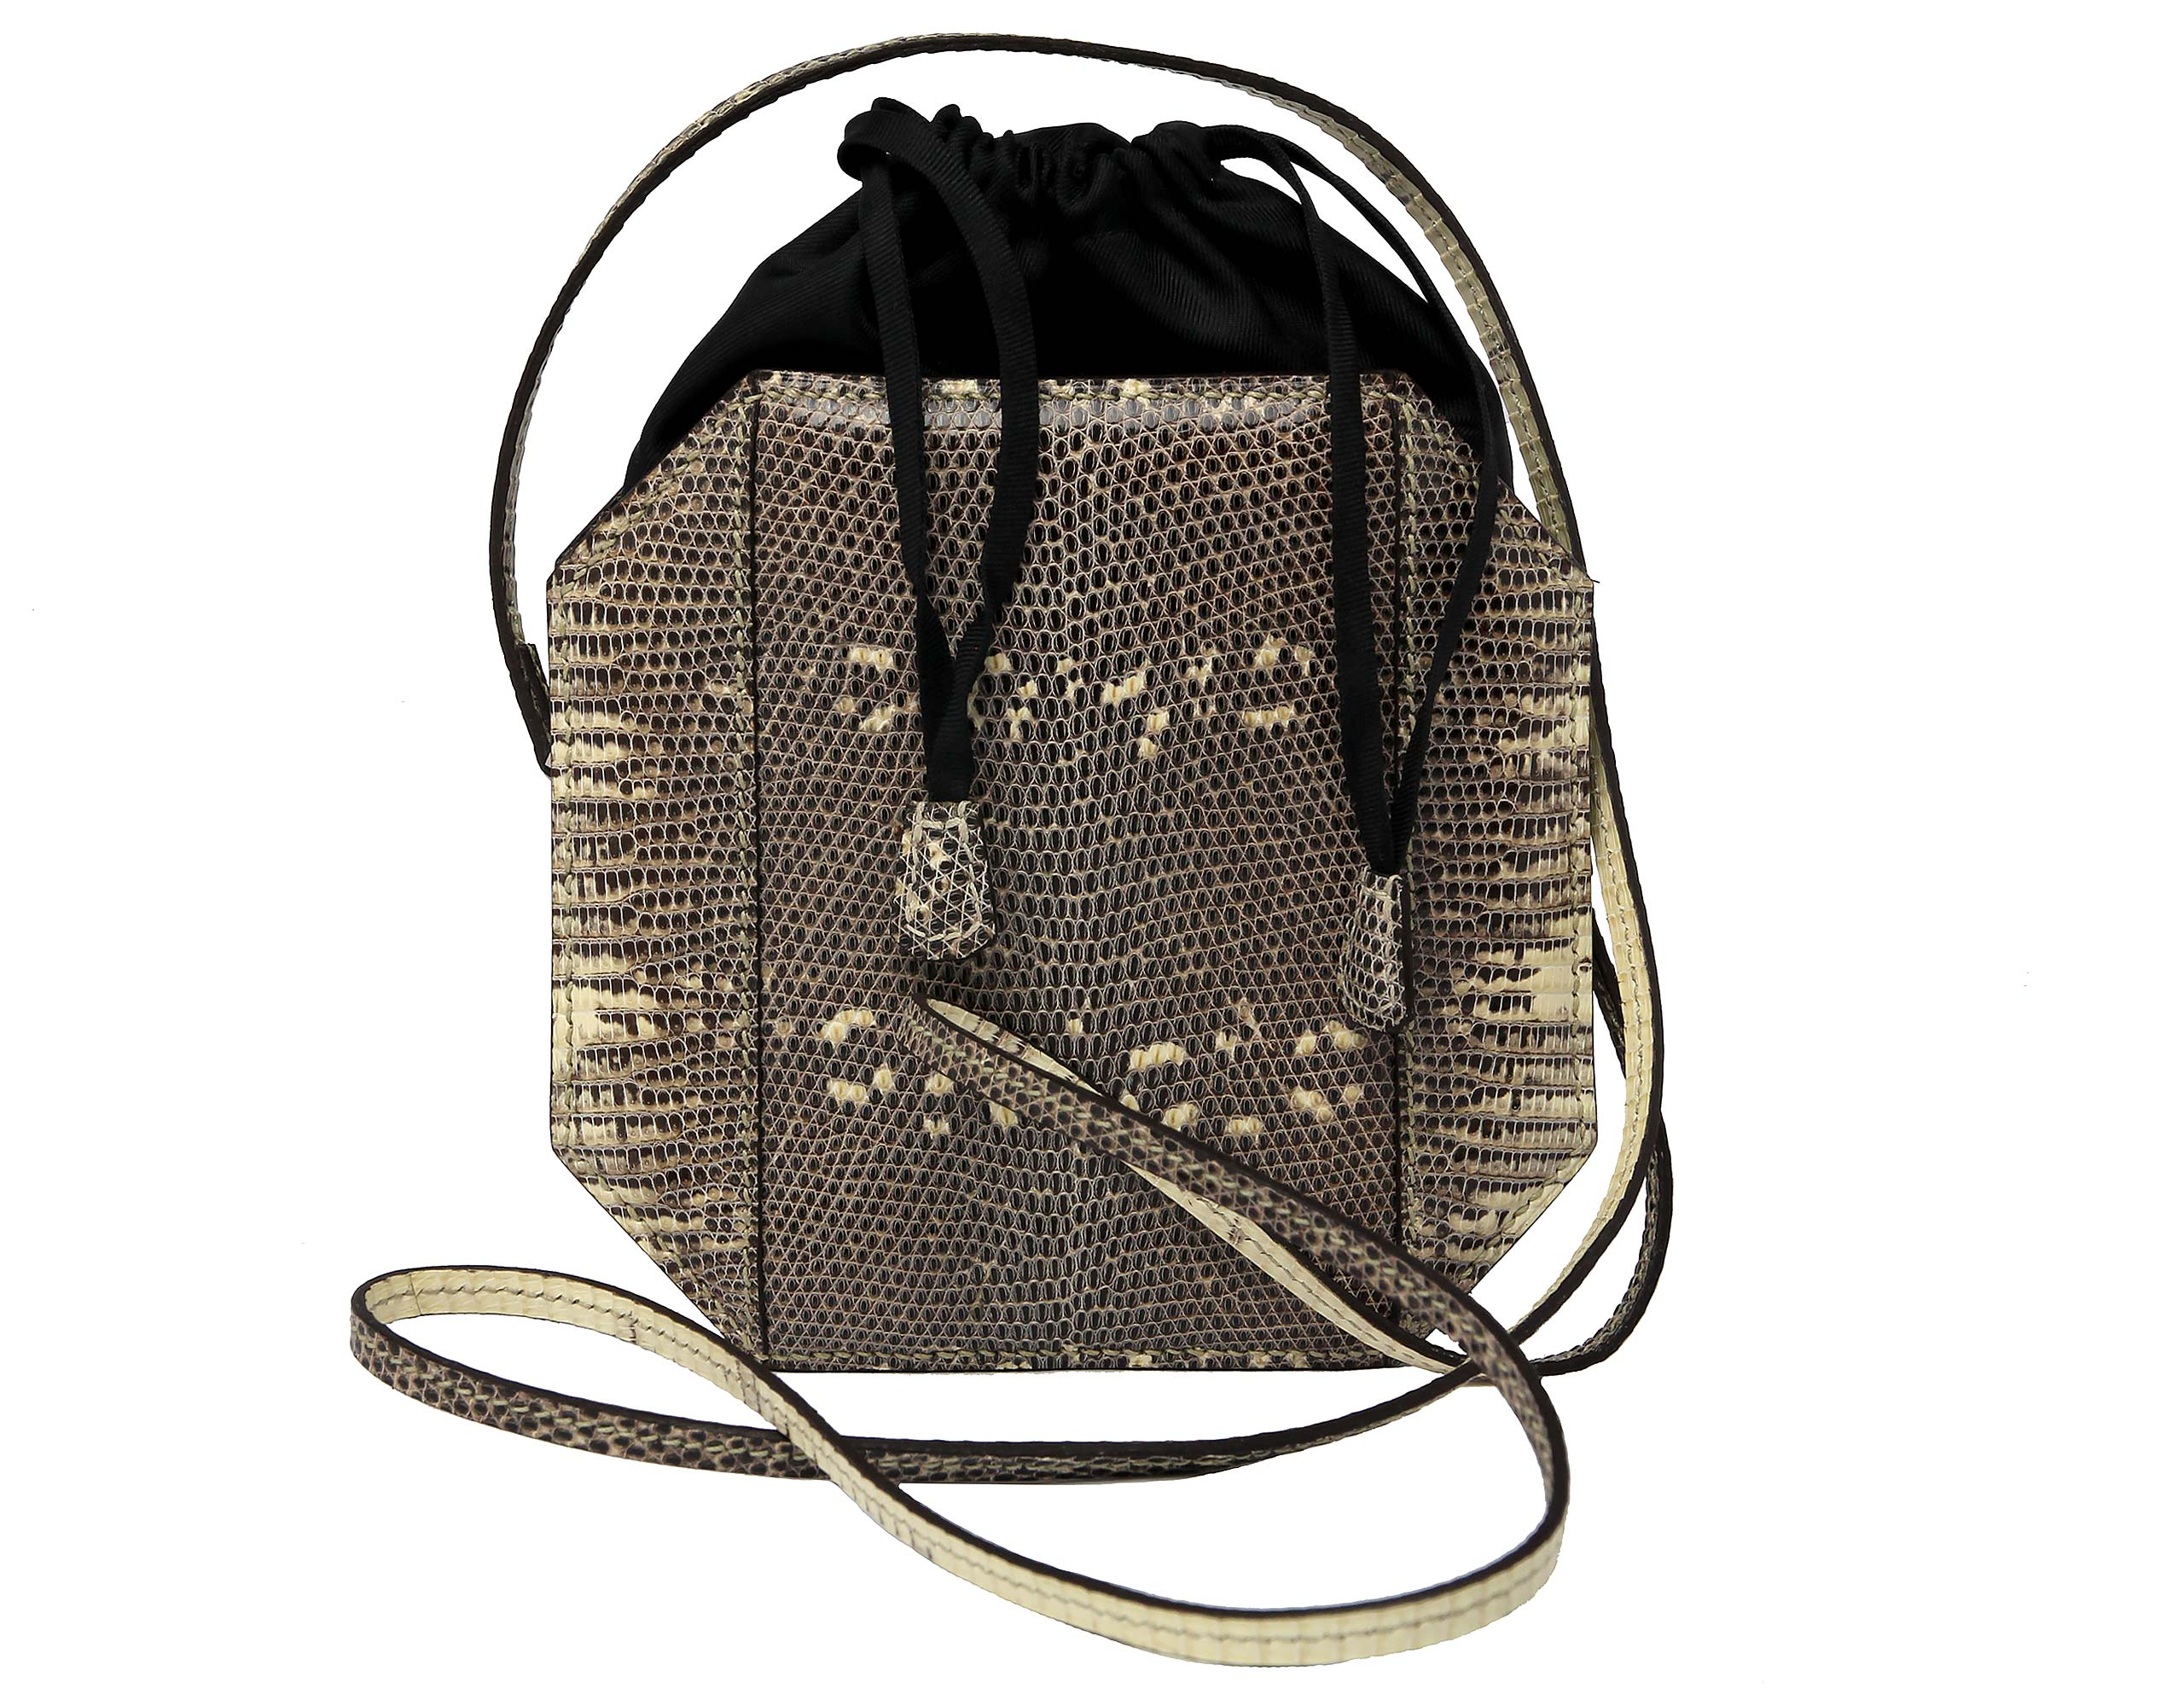 hermes-sac-a-poudrier-ombre-lizard-phw-sp002-LG03